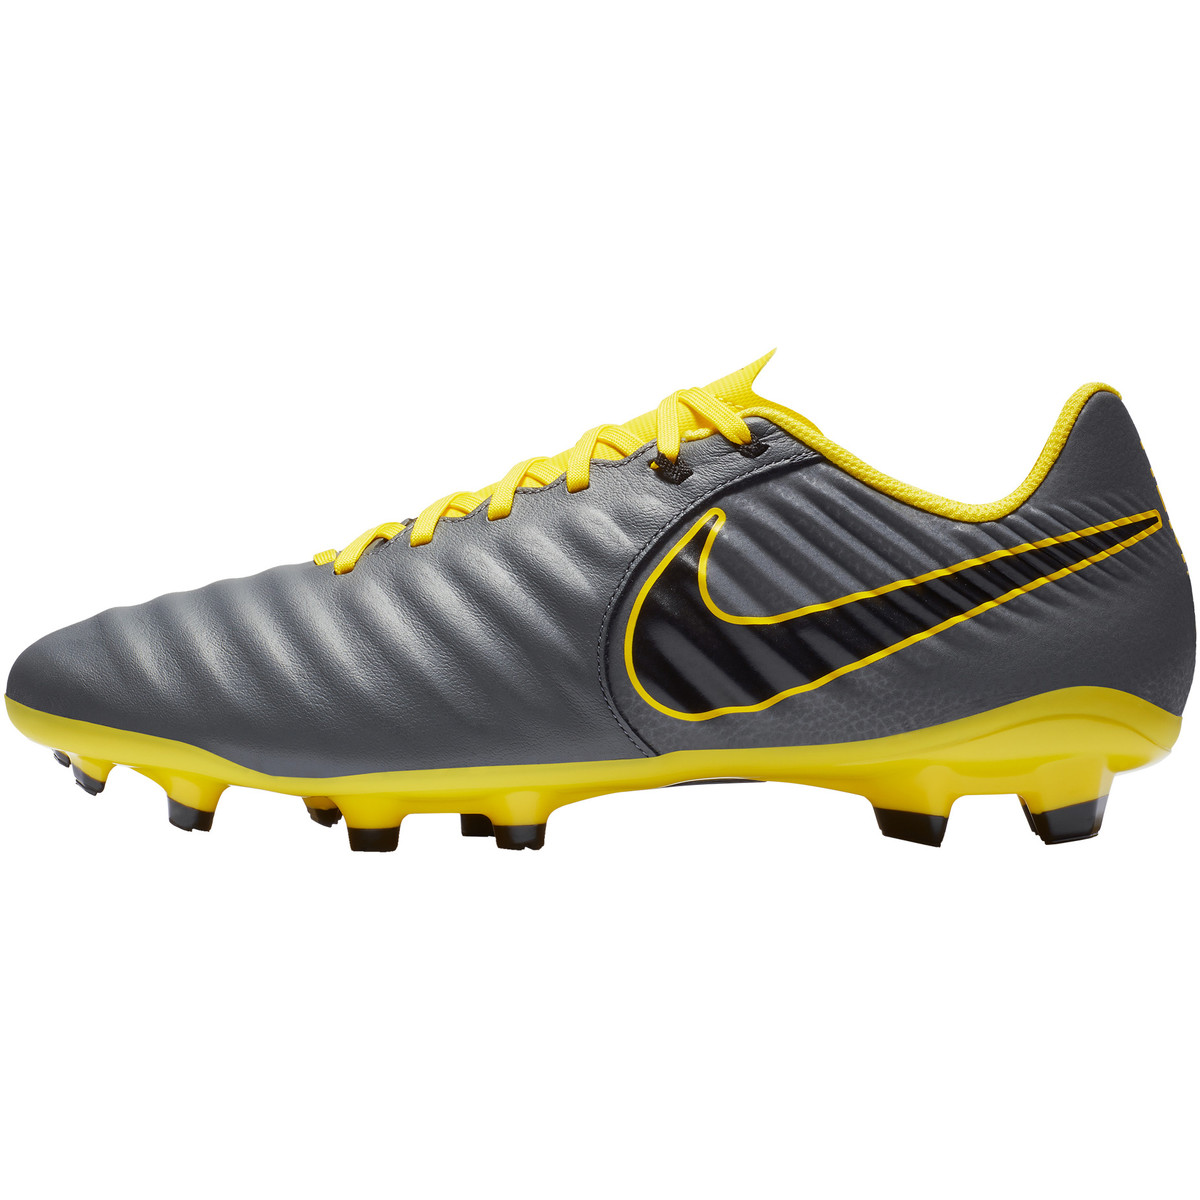 Fg Nike Academy Foot Tiempo Vii De Legend Chaussures 8nwN0m